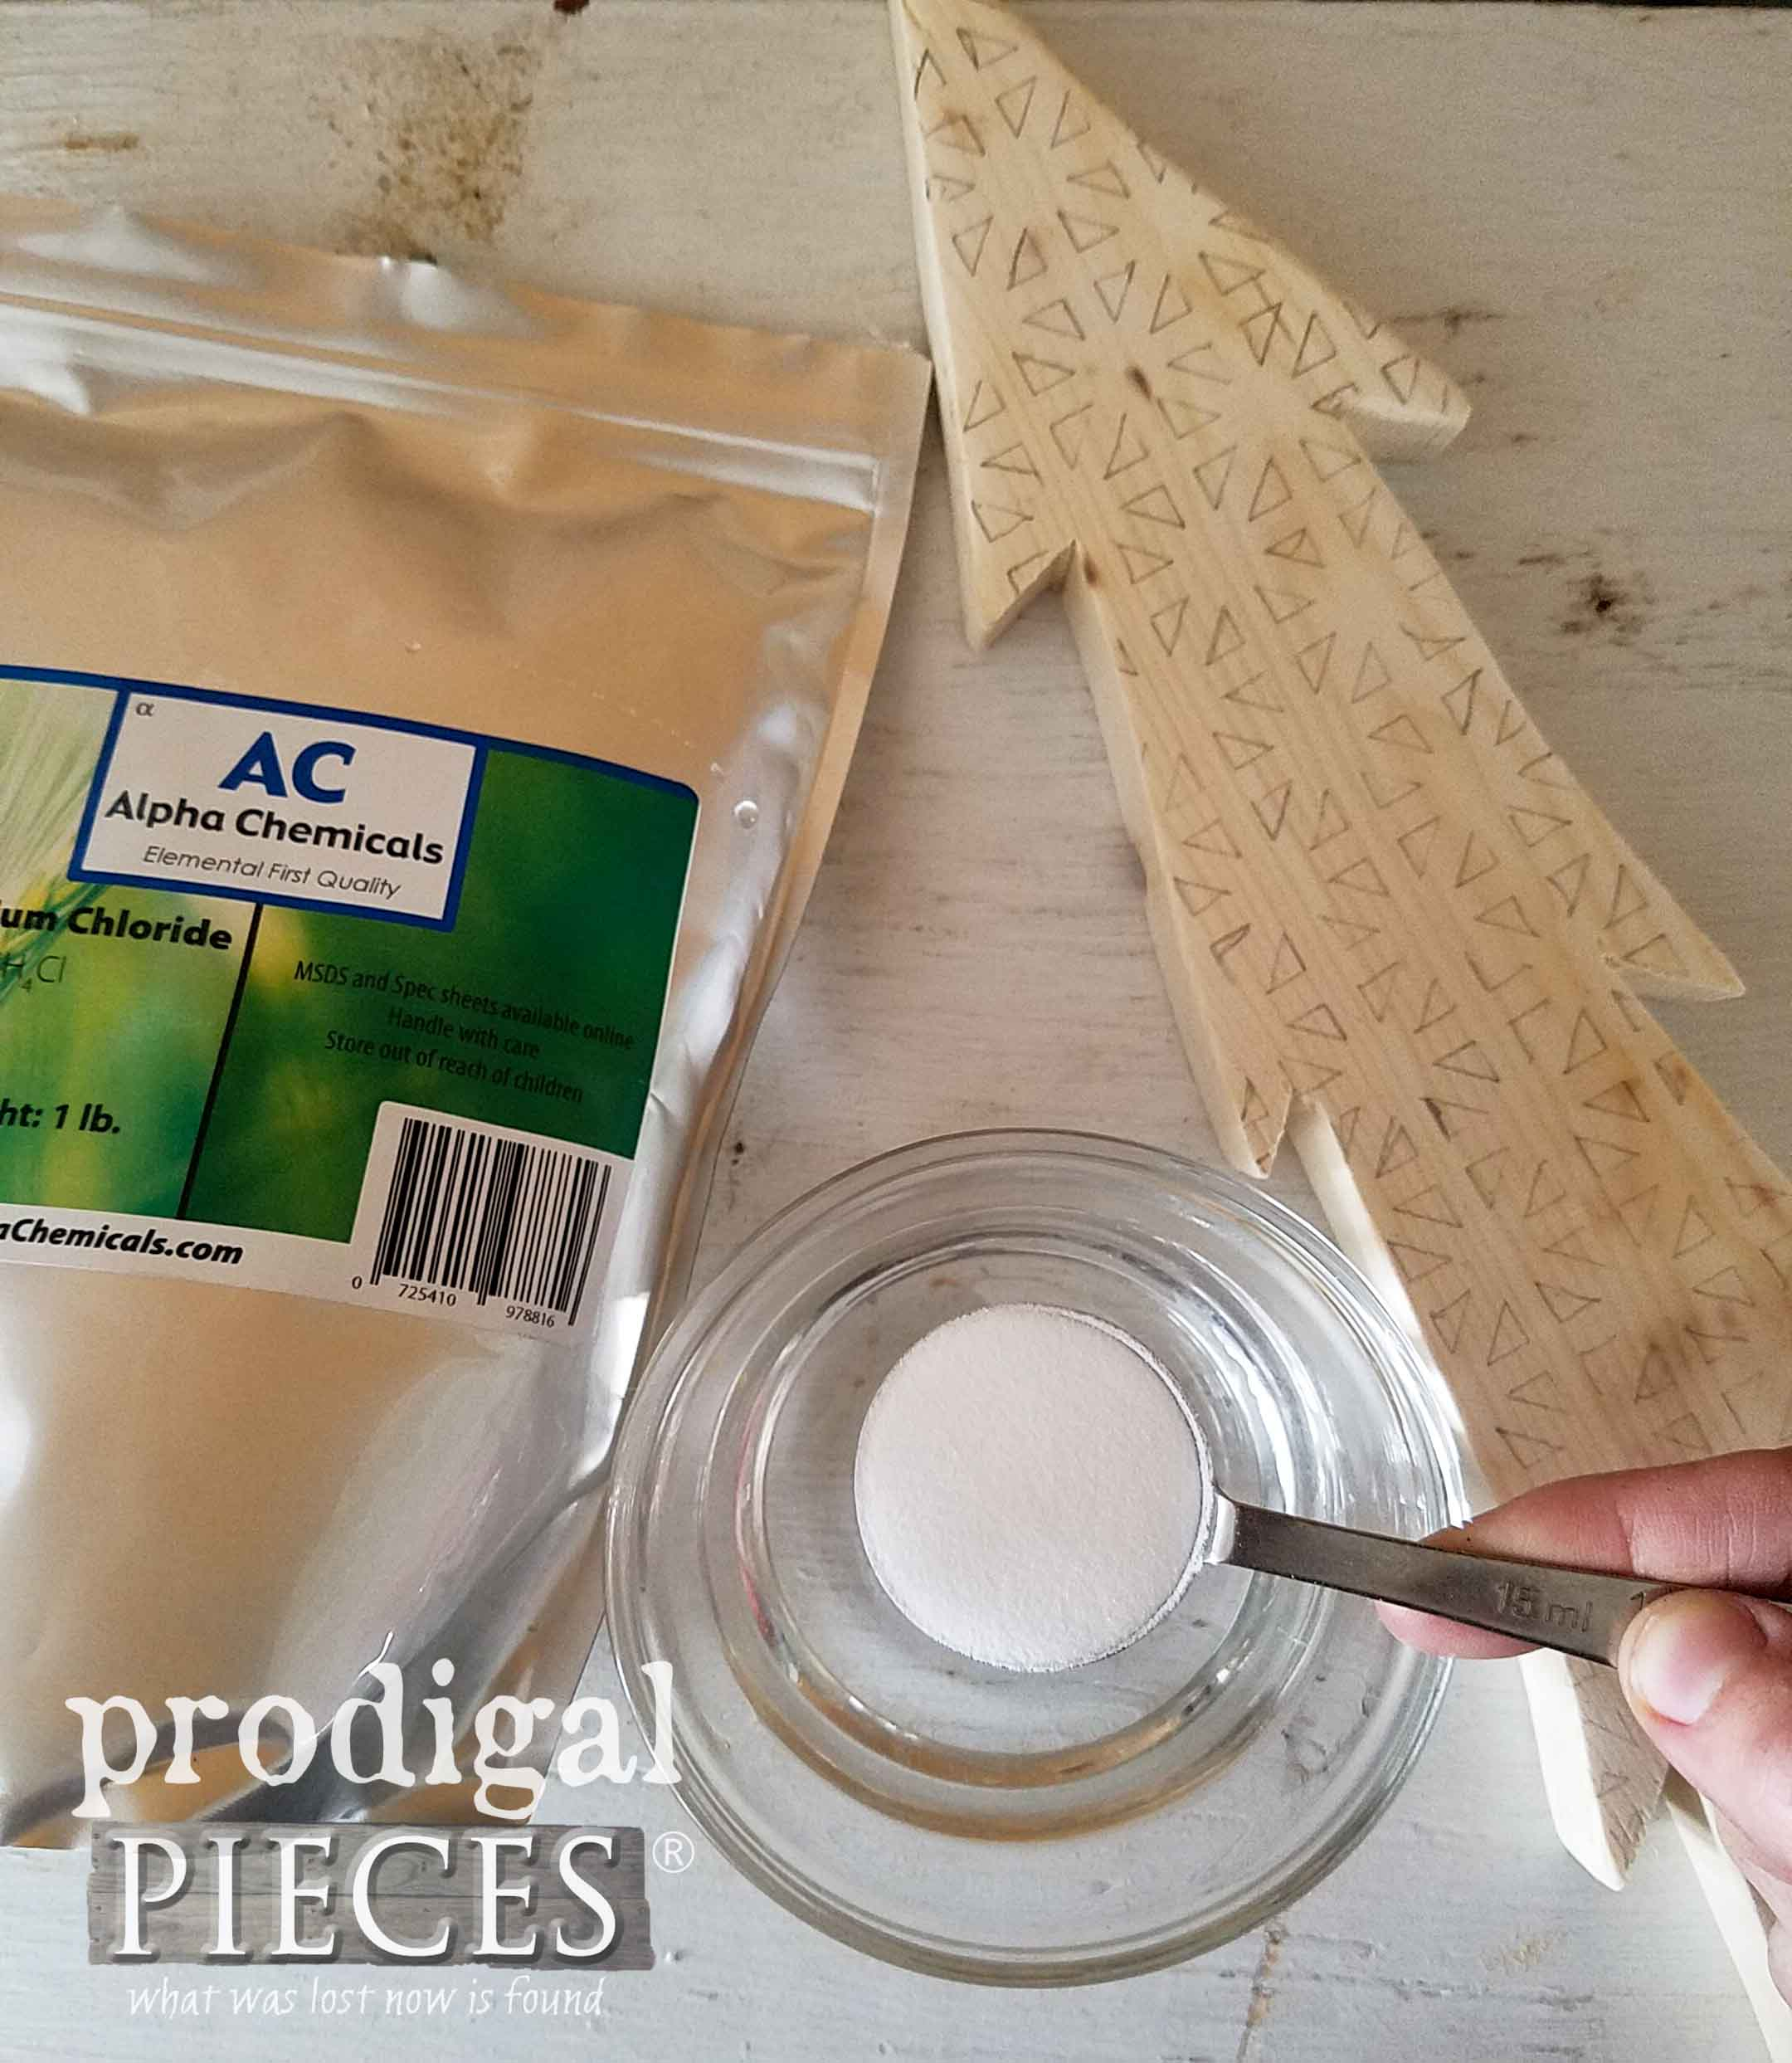 Mixing ammonium chloride for heat gun wood burning by Larissa of Prodigal Pieces | prodigalpieces.com